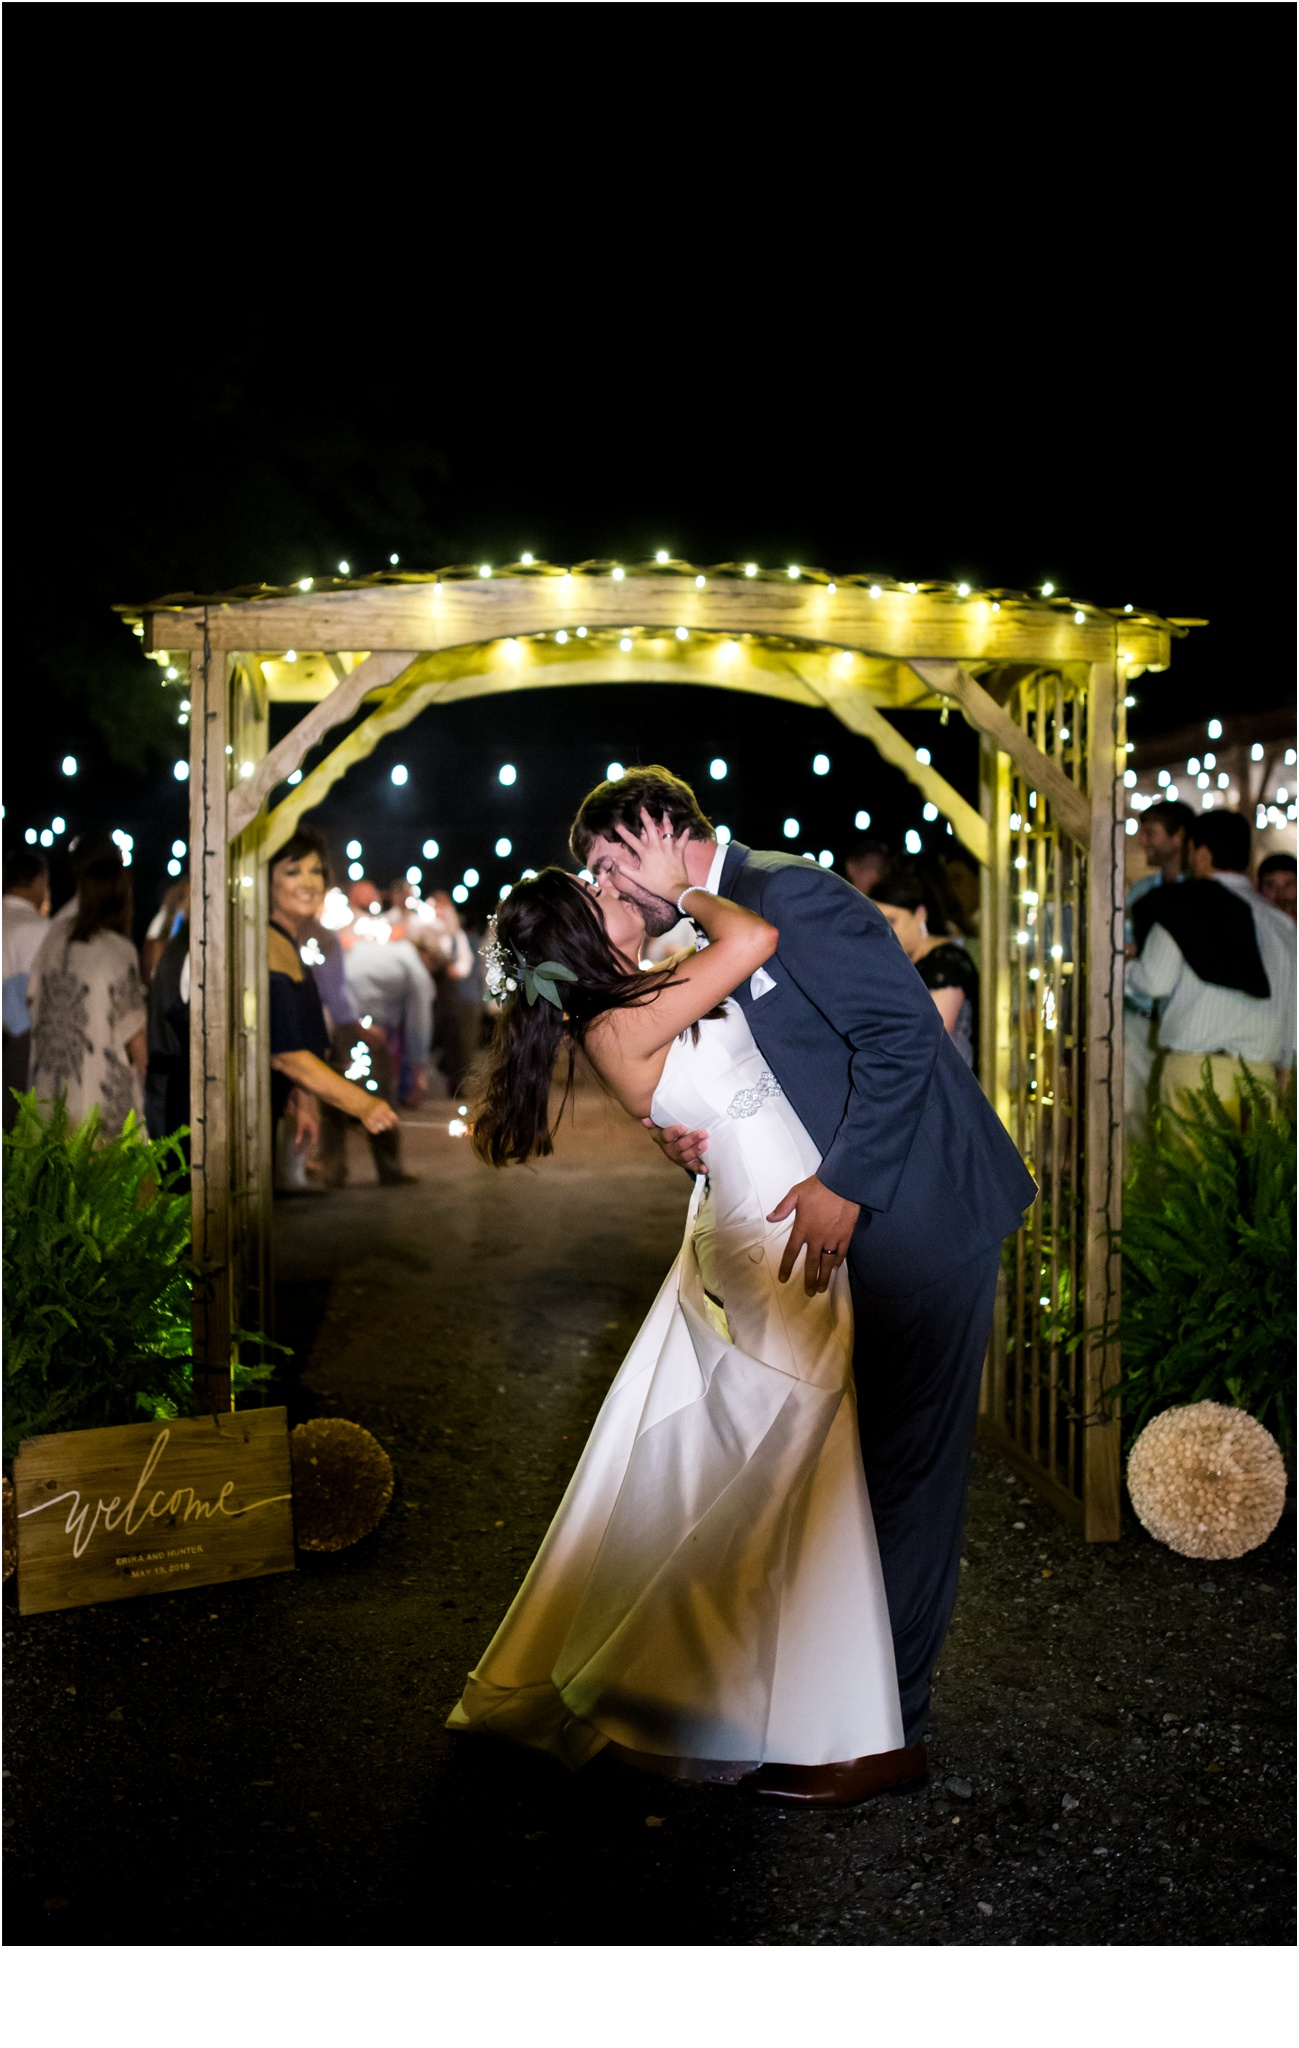 Rainey_Gregg_Photography_St._Simons_Island_Georgia_California_Wedding_Portrait_Photography_1002.jpg